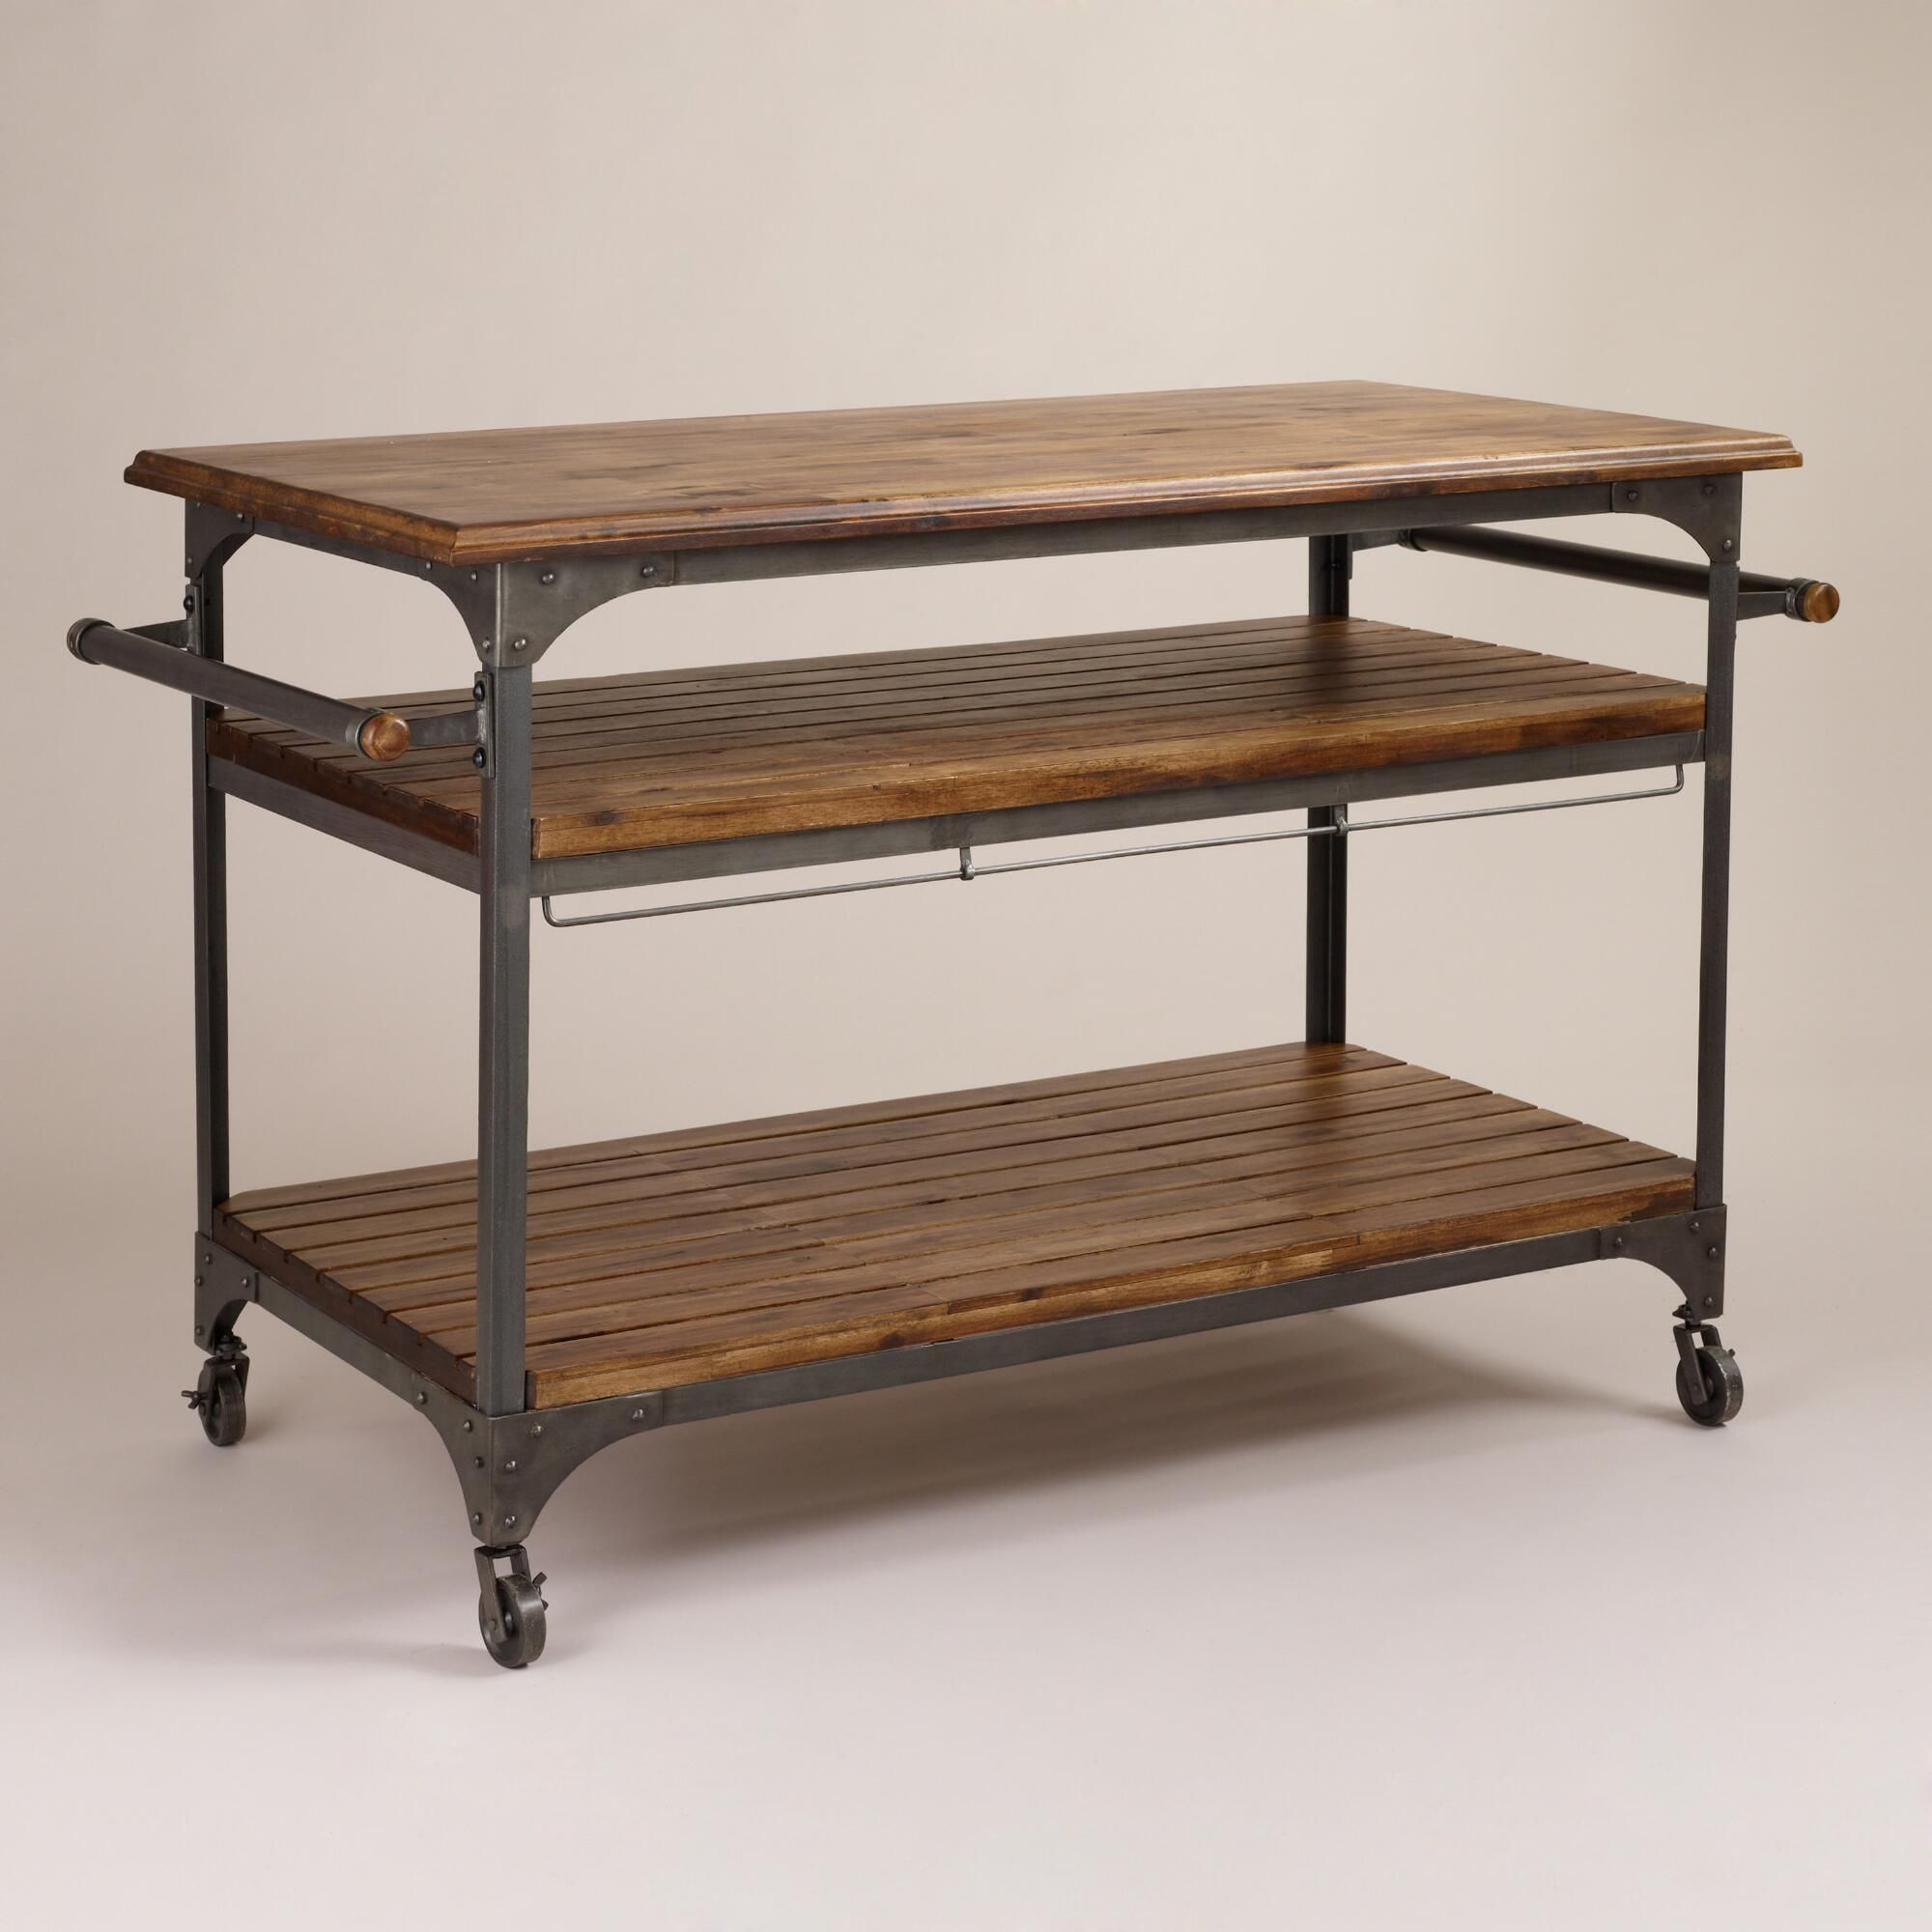 wood and metal jackson kitchen cart industrial kitchen